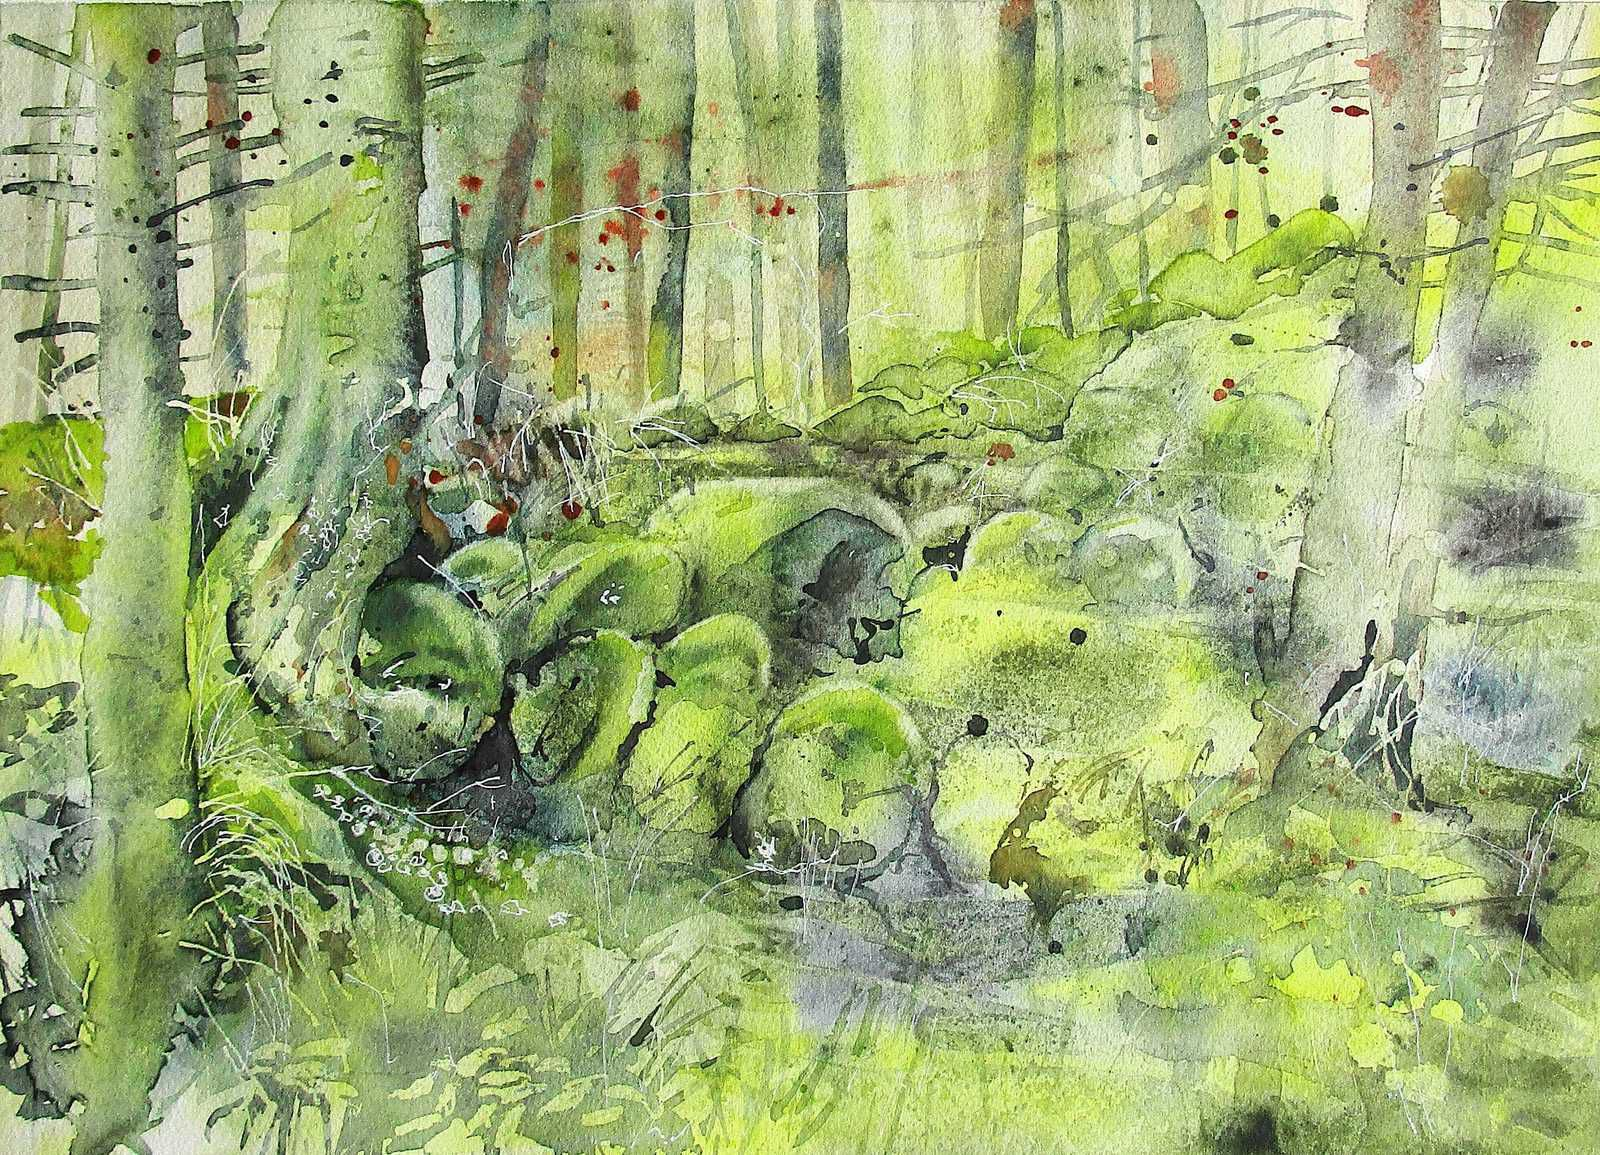 Paysage forestier.